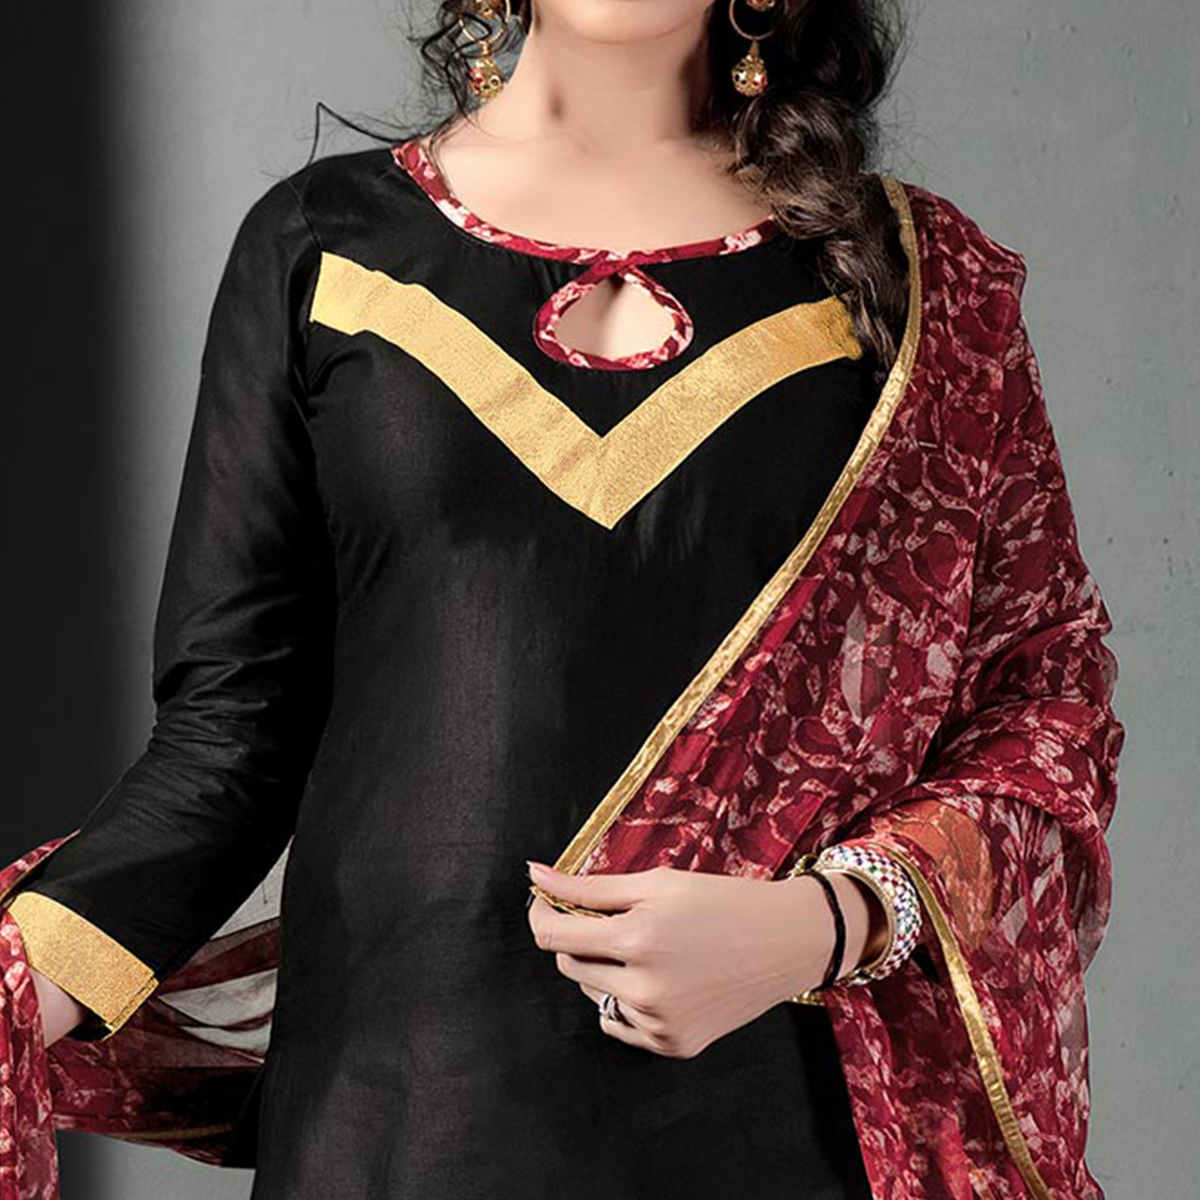 Mesmerising Black Colored Semi-Patiala Style Cotton Dress Material